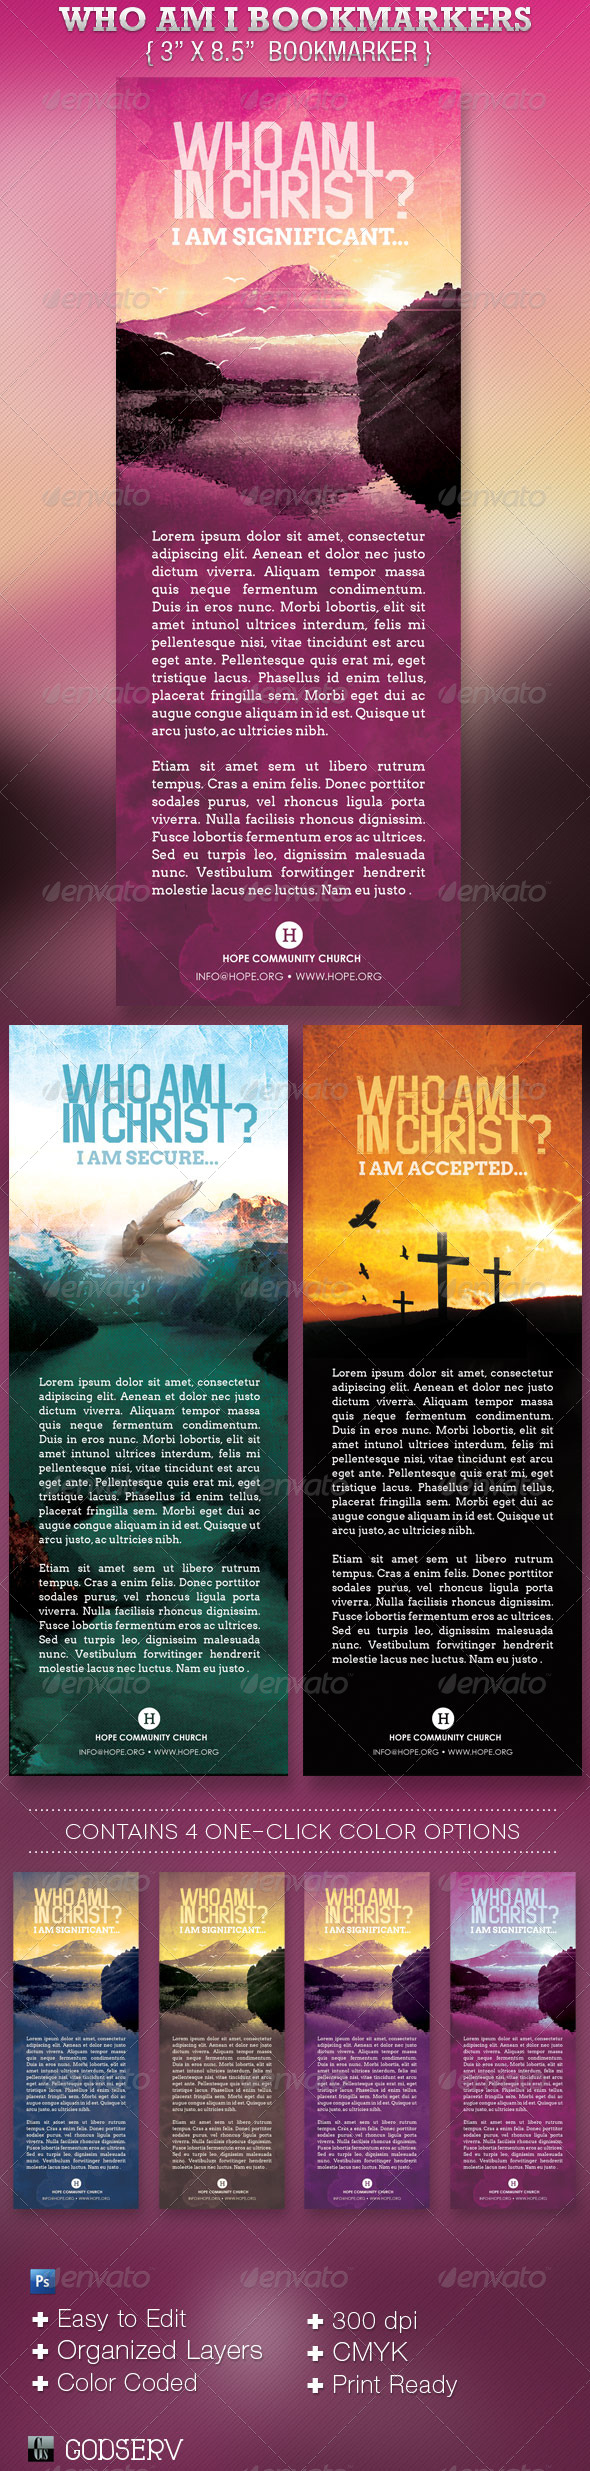 GraphicRiver Who Am I In Christ Bookmarker Template 3932422